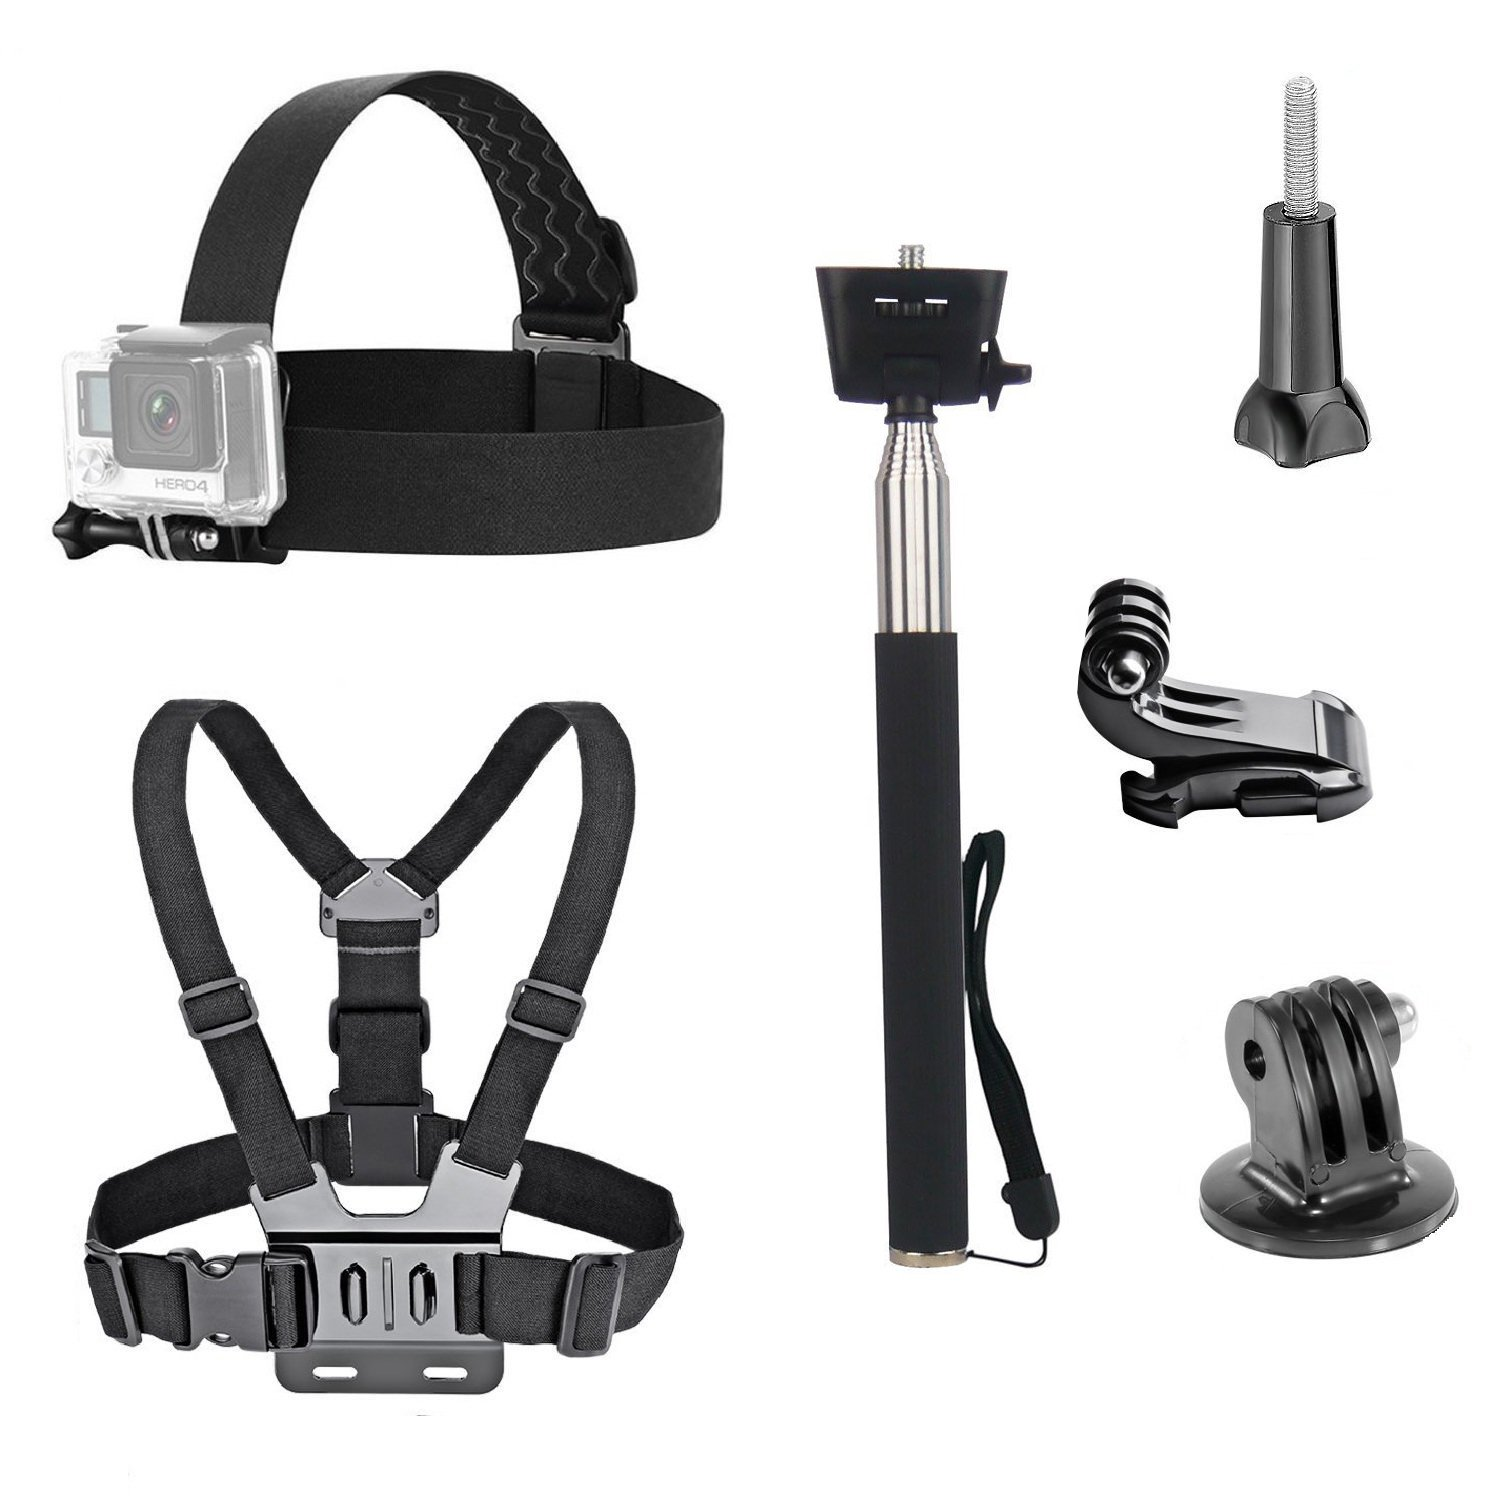 VVHOOY 3 in 1 Universal Waterproof Action Camera Accessories Bundle Kit - Head Strap Mount/Chest Harness/Selfie stick Compatible with Gopro Hero 7 6 5/AKASO EK7000/APEMAN/ODRVM/Crosstour Action Camera by VVHOOY